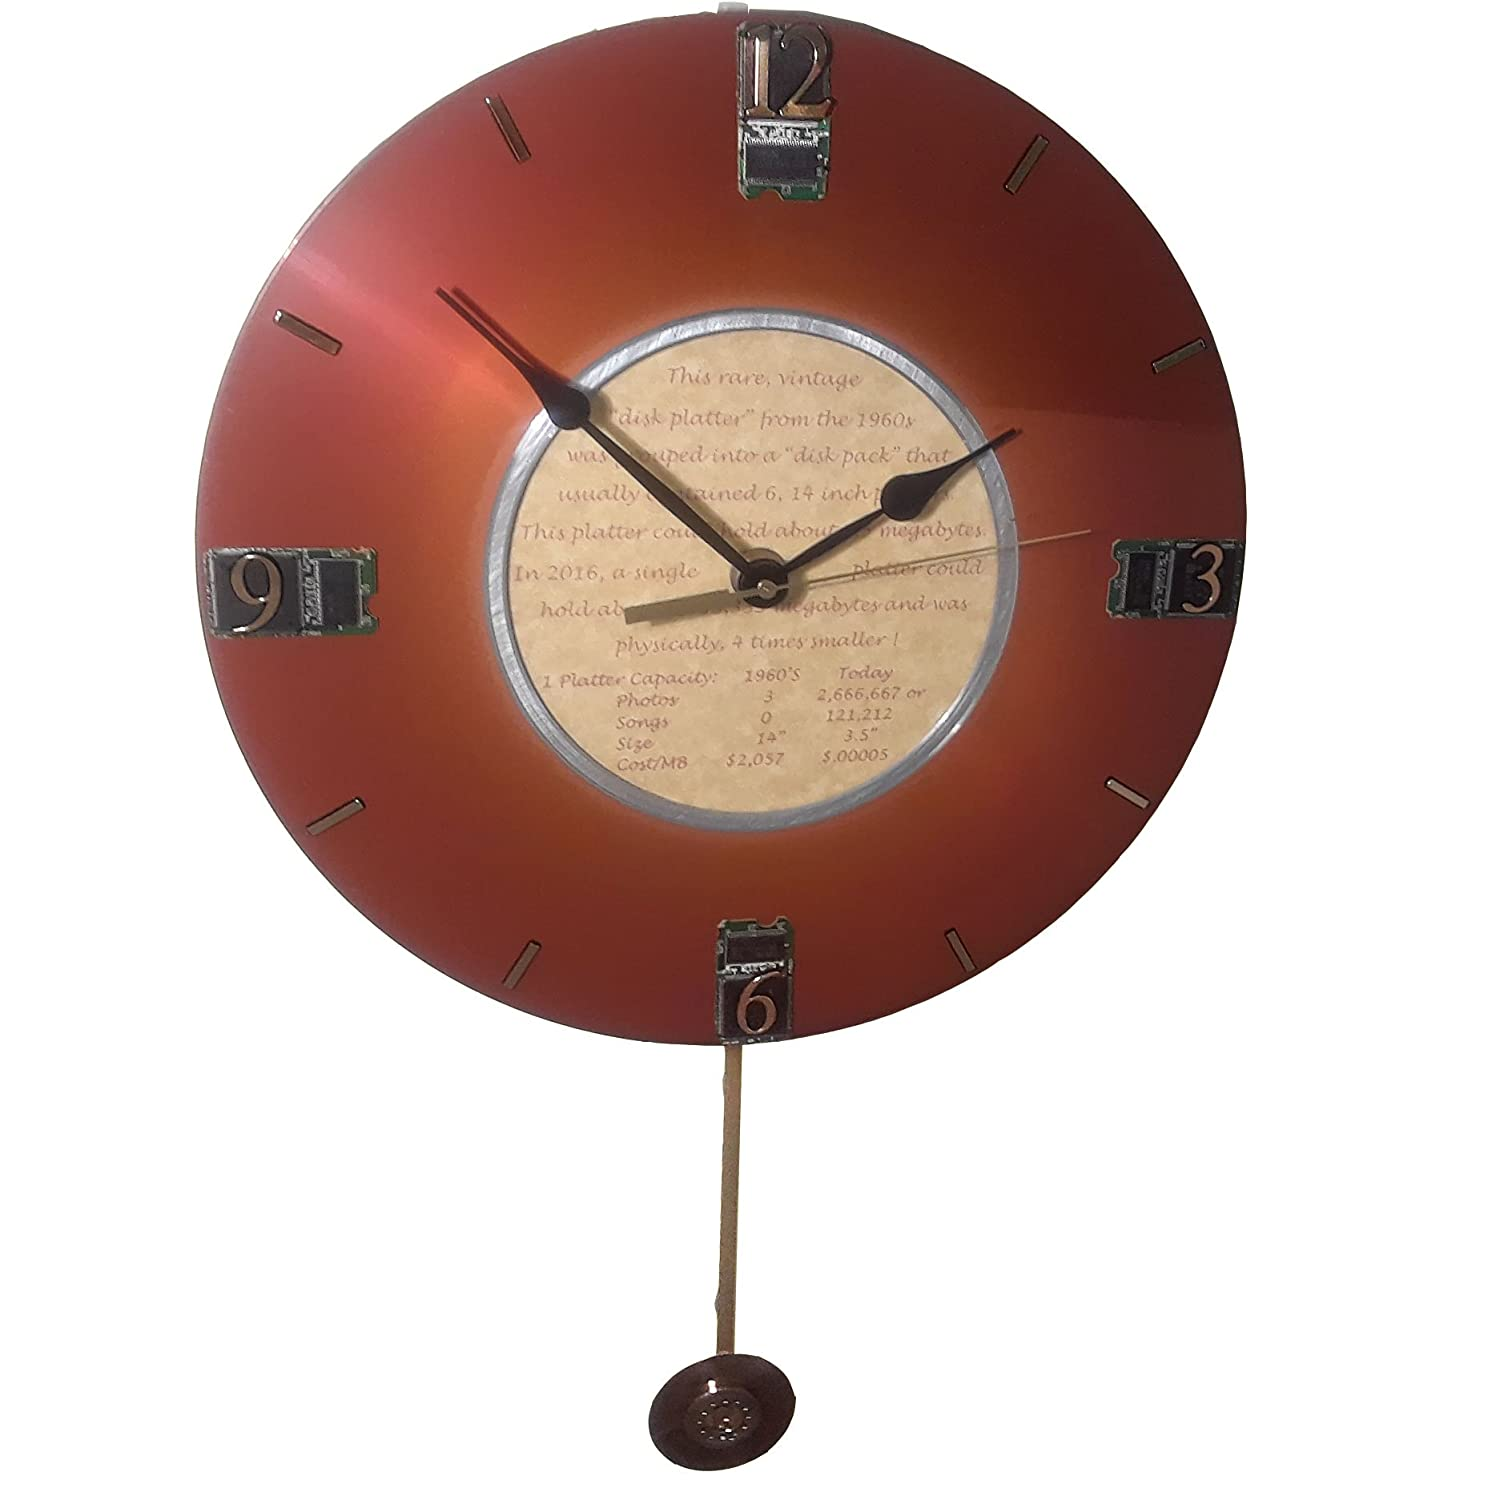 Pendulum Clock From An Ibm Vintage Computer Hard Drive Circuit Board Etsy Disk Platter The 1960s Got Unique Retirement Gift Office Company